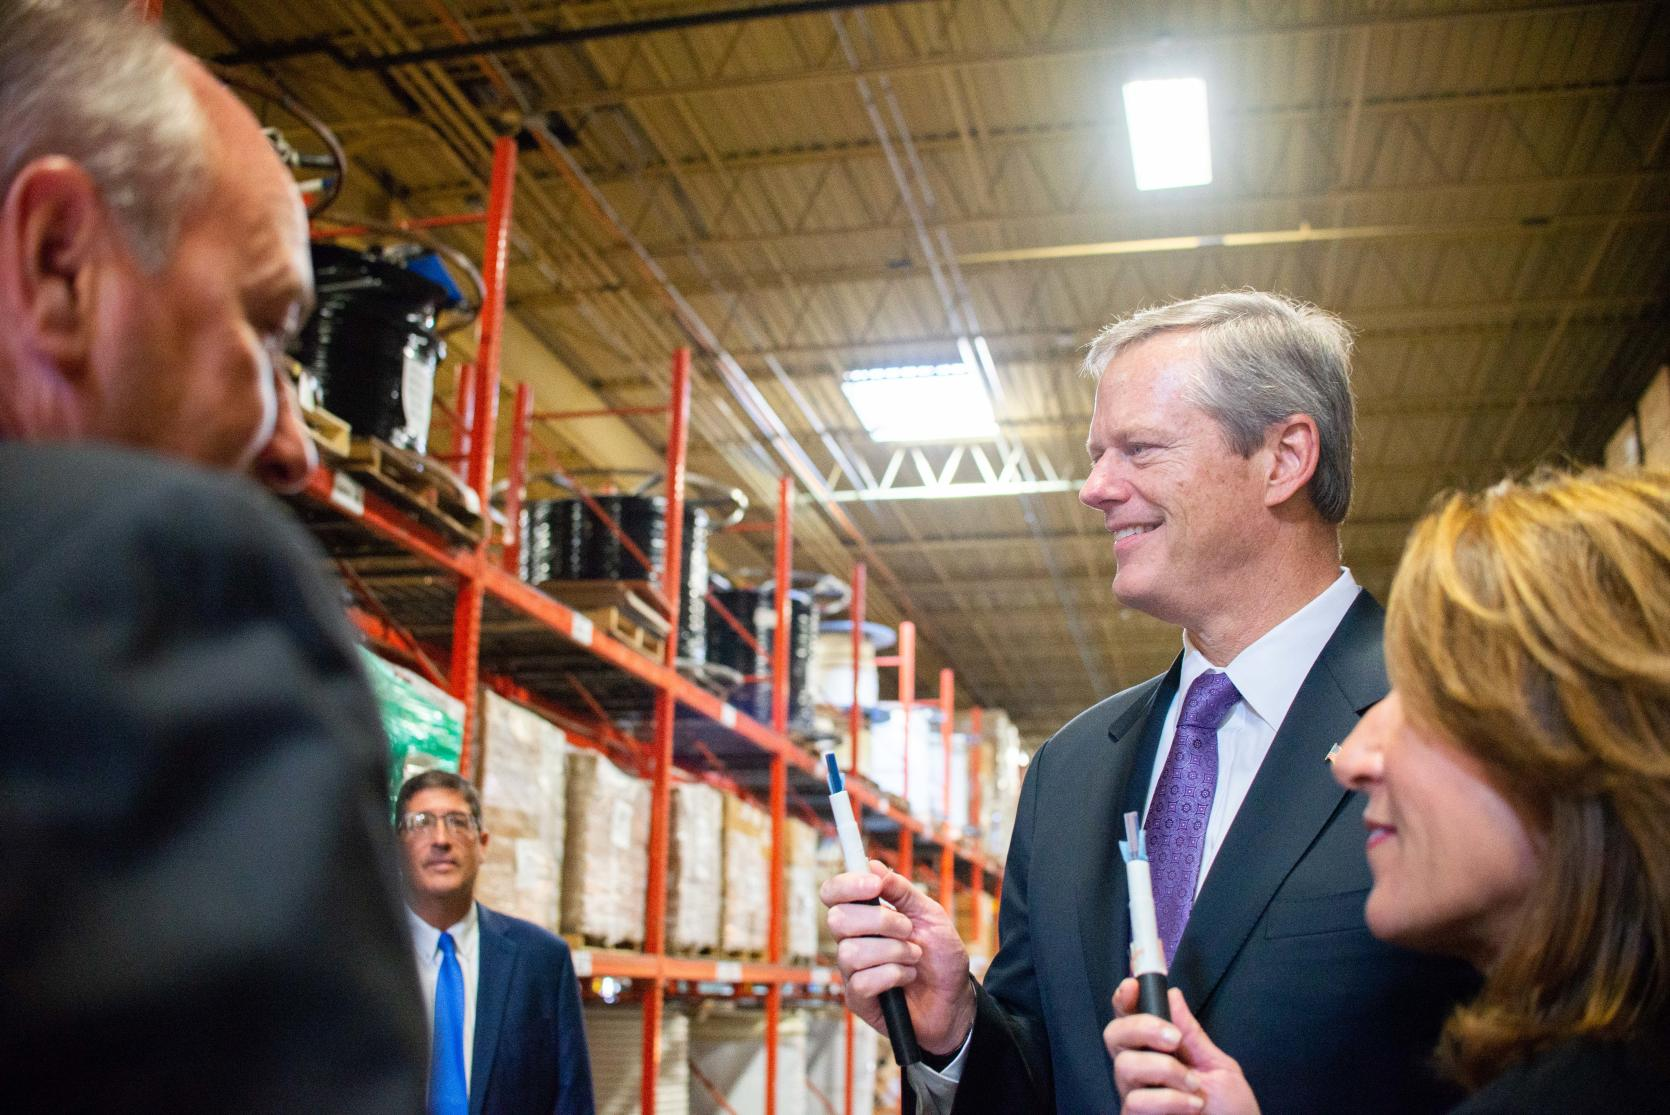 Governor Baker and Lt. Governor Polito at Westfield Gas + Electric (WG+E).